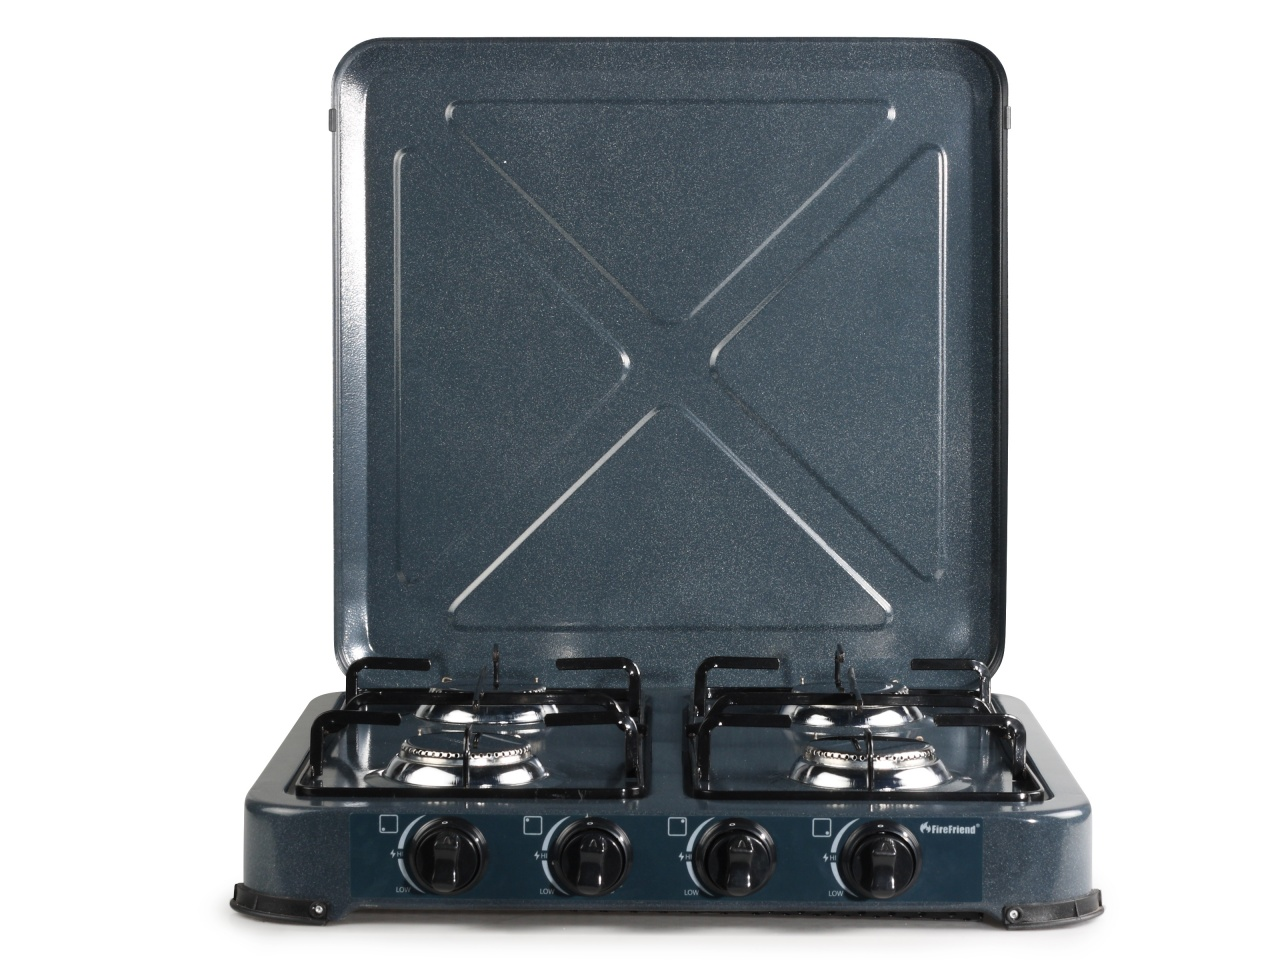 COCINA-HORNILLO-CAMPART-KO-6584-4-GAS-COLOR-NEGRO